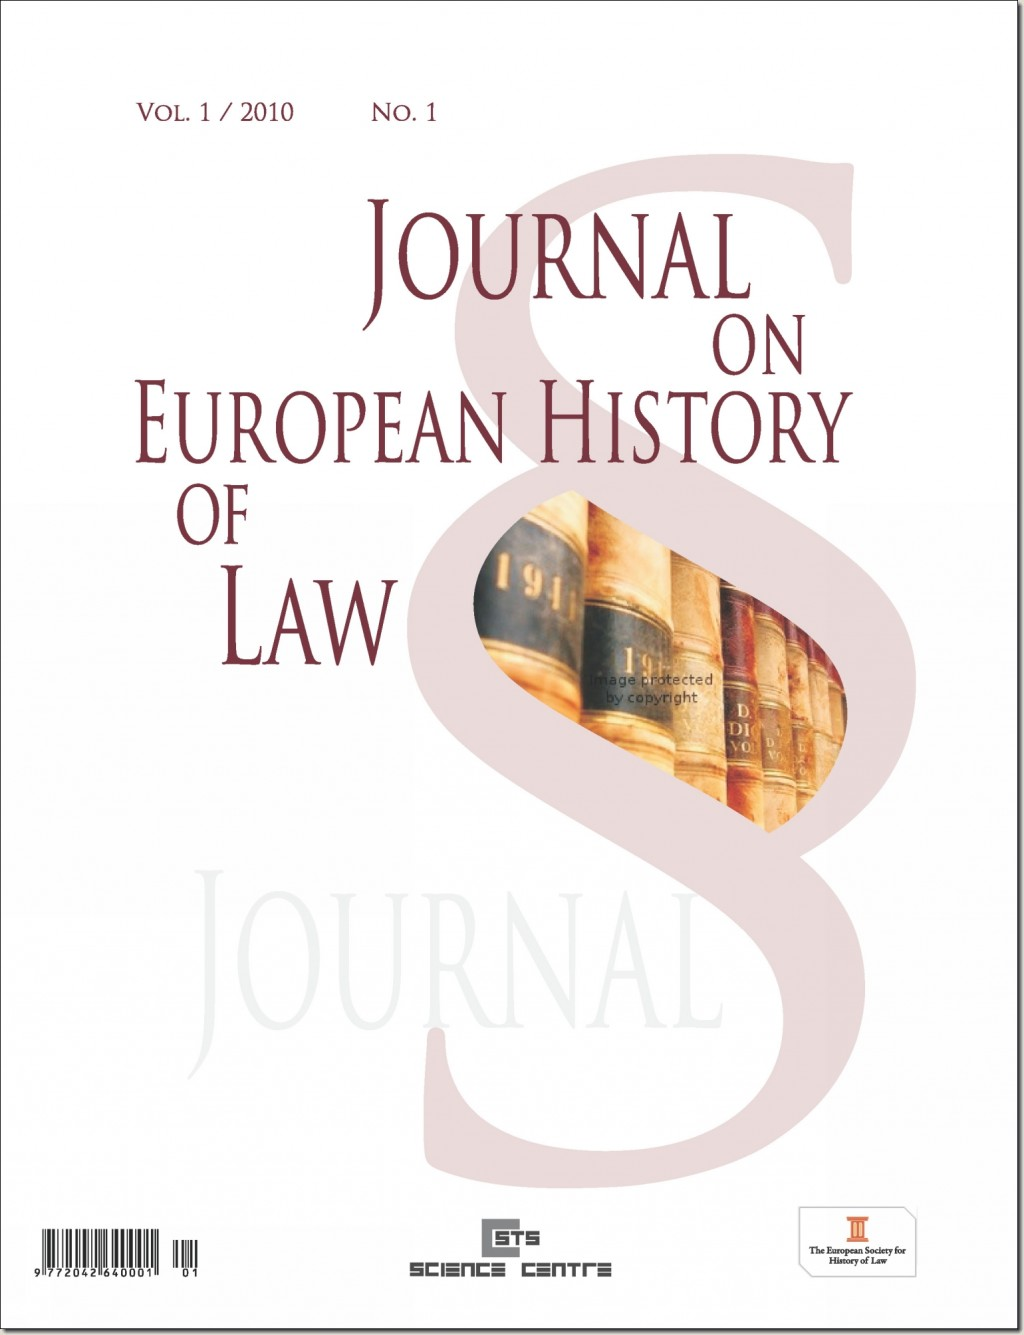 014 Research Paper 20th Century European History Topics Journal On Of Law Cover 1 Magnificent Large